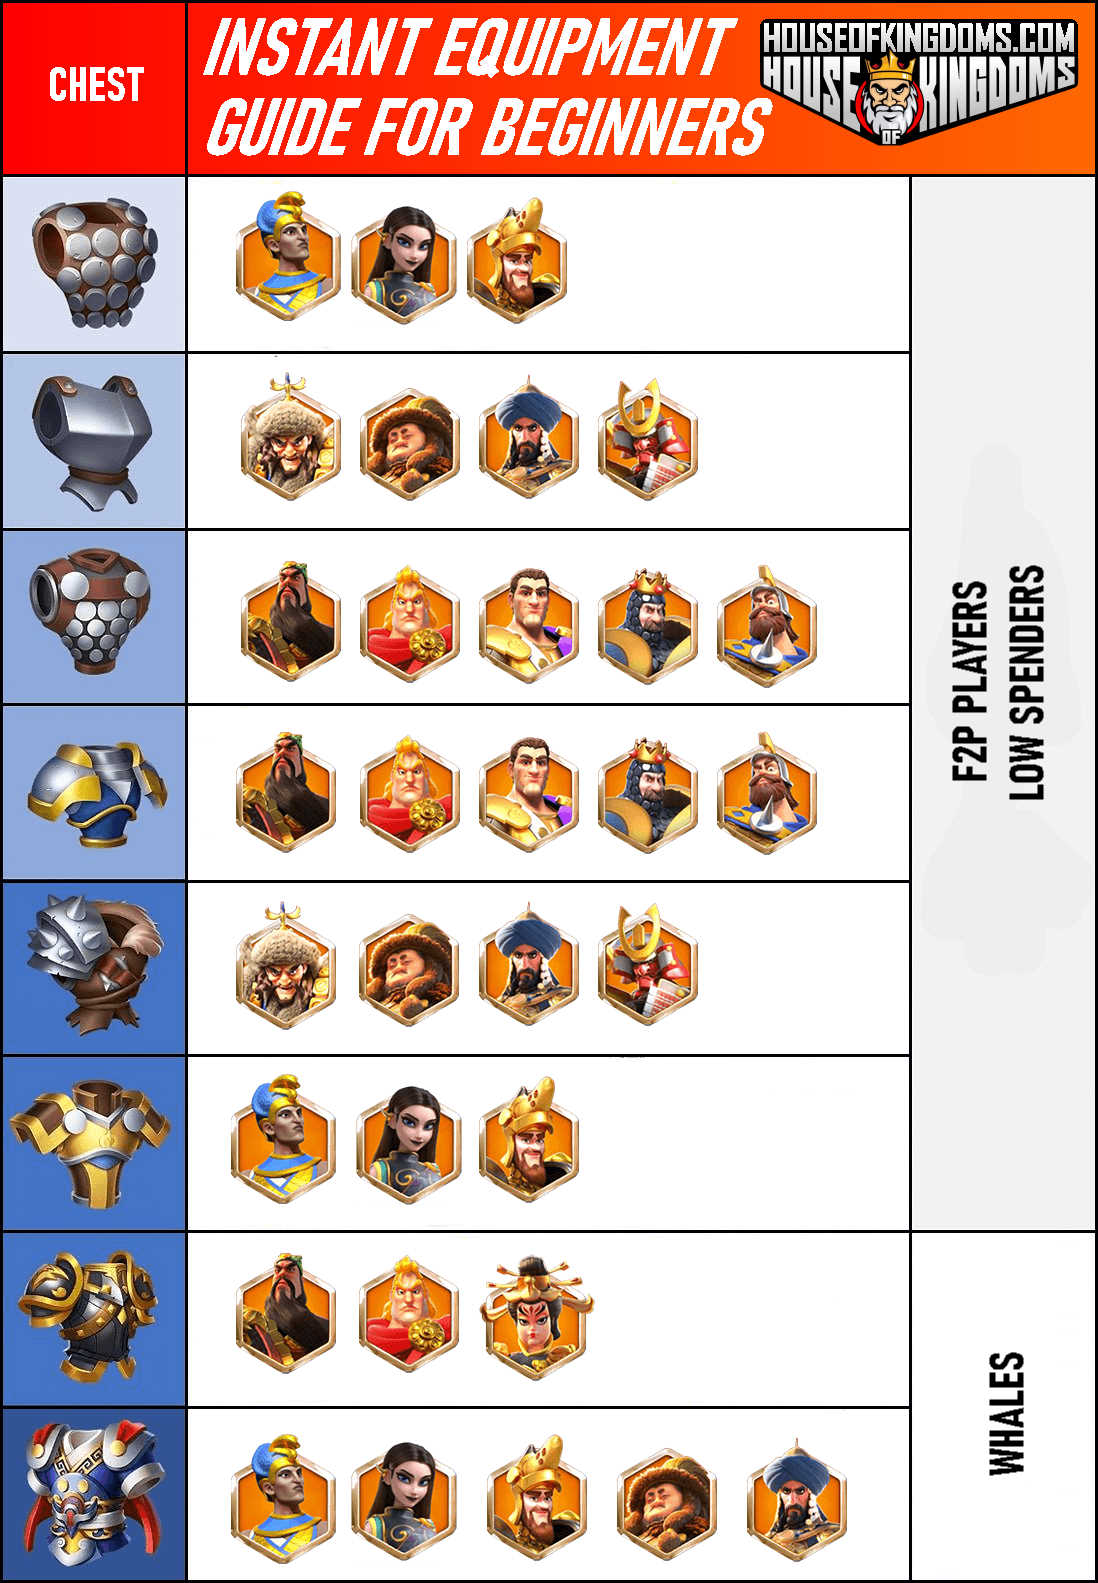 Rise of Kingdoms Chest Equipment Guide